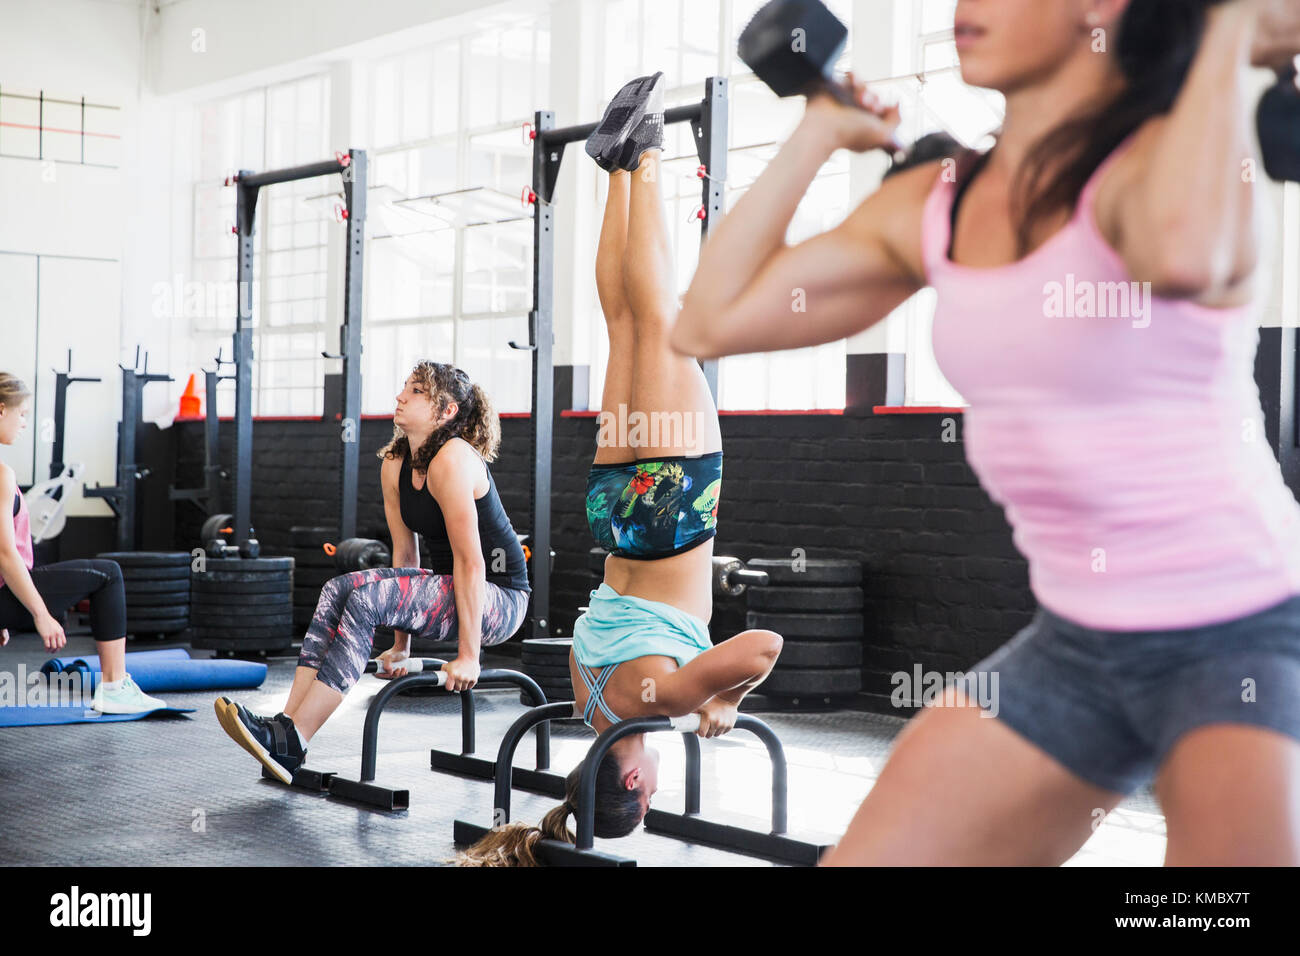 Young women working out in gym - Stock Image